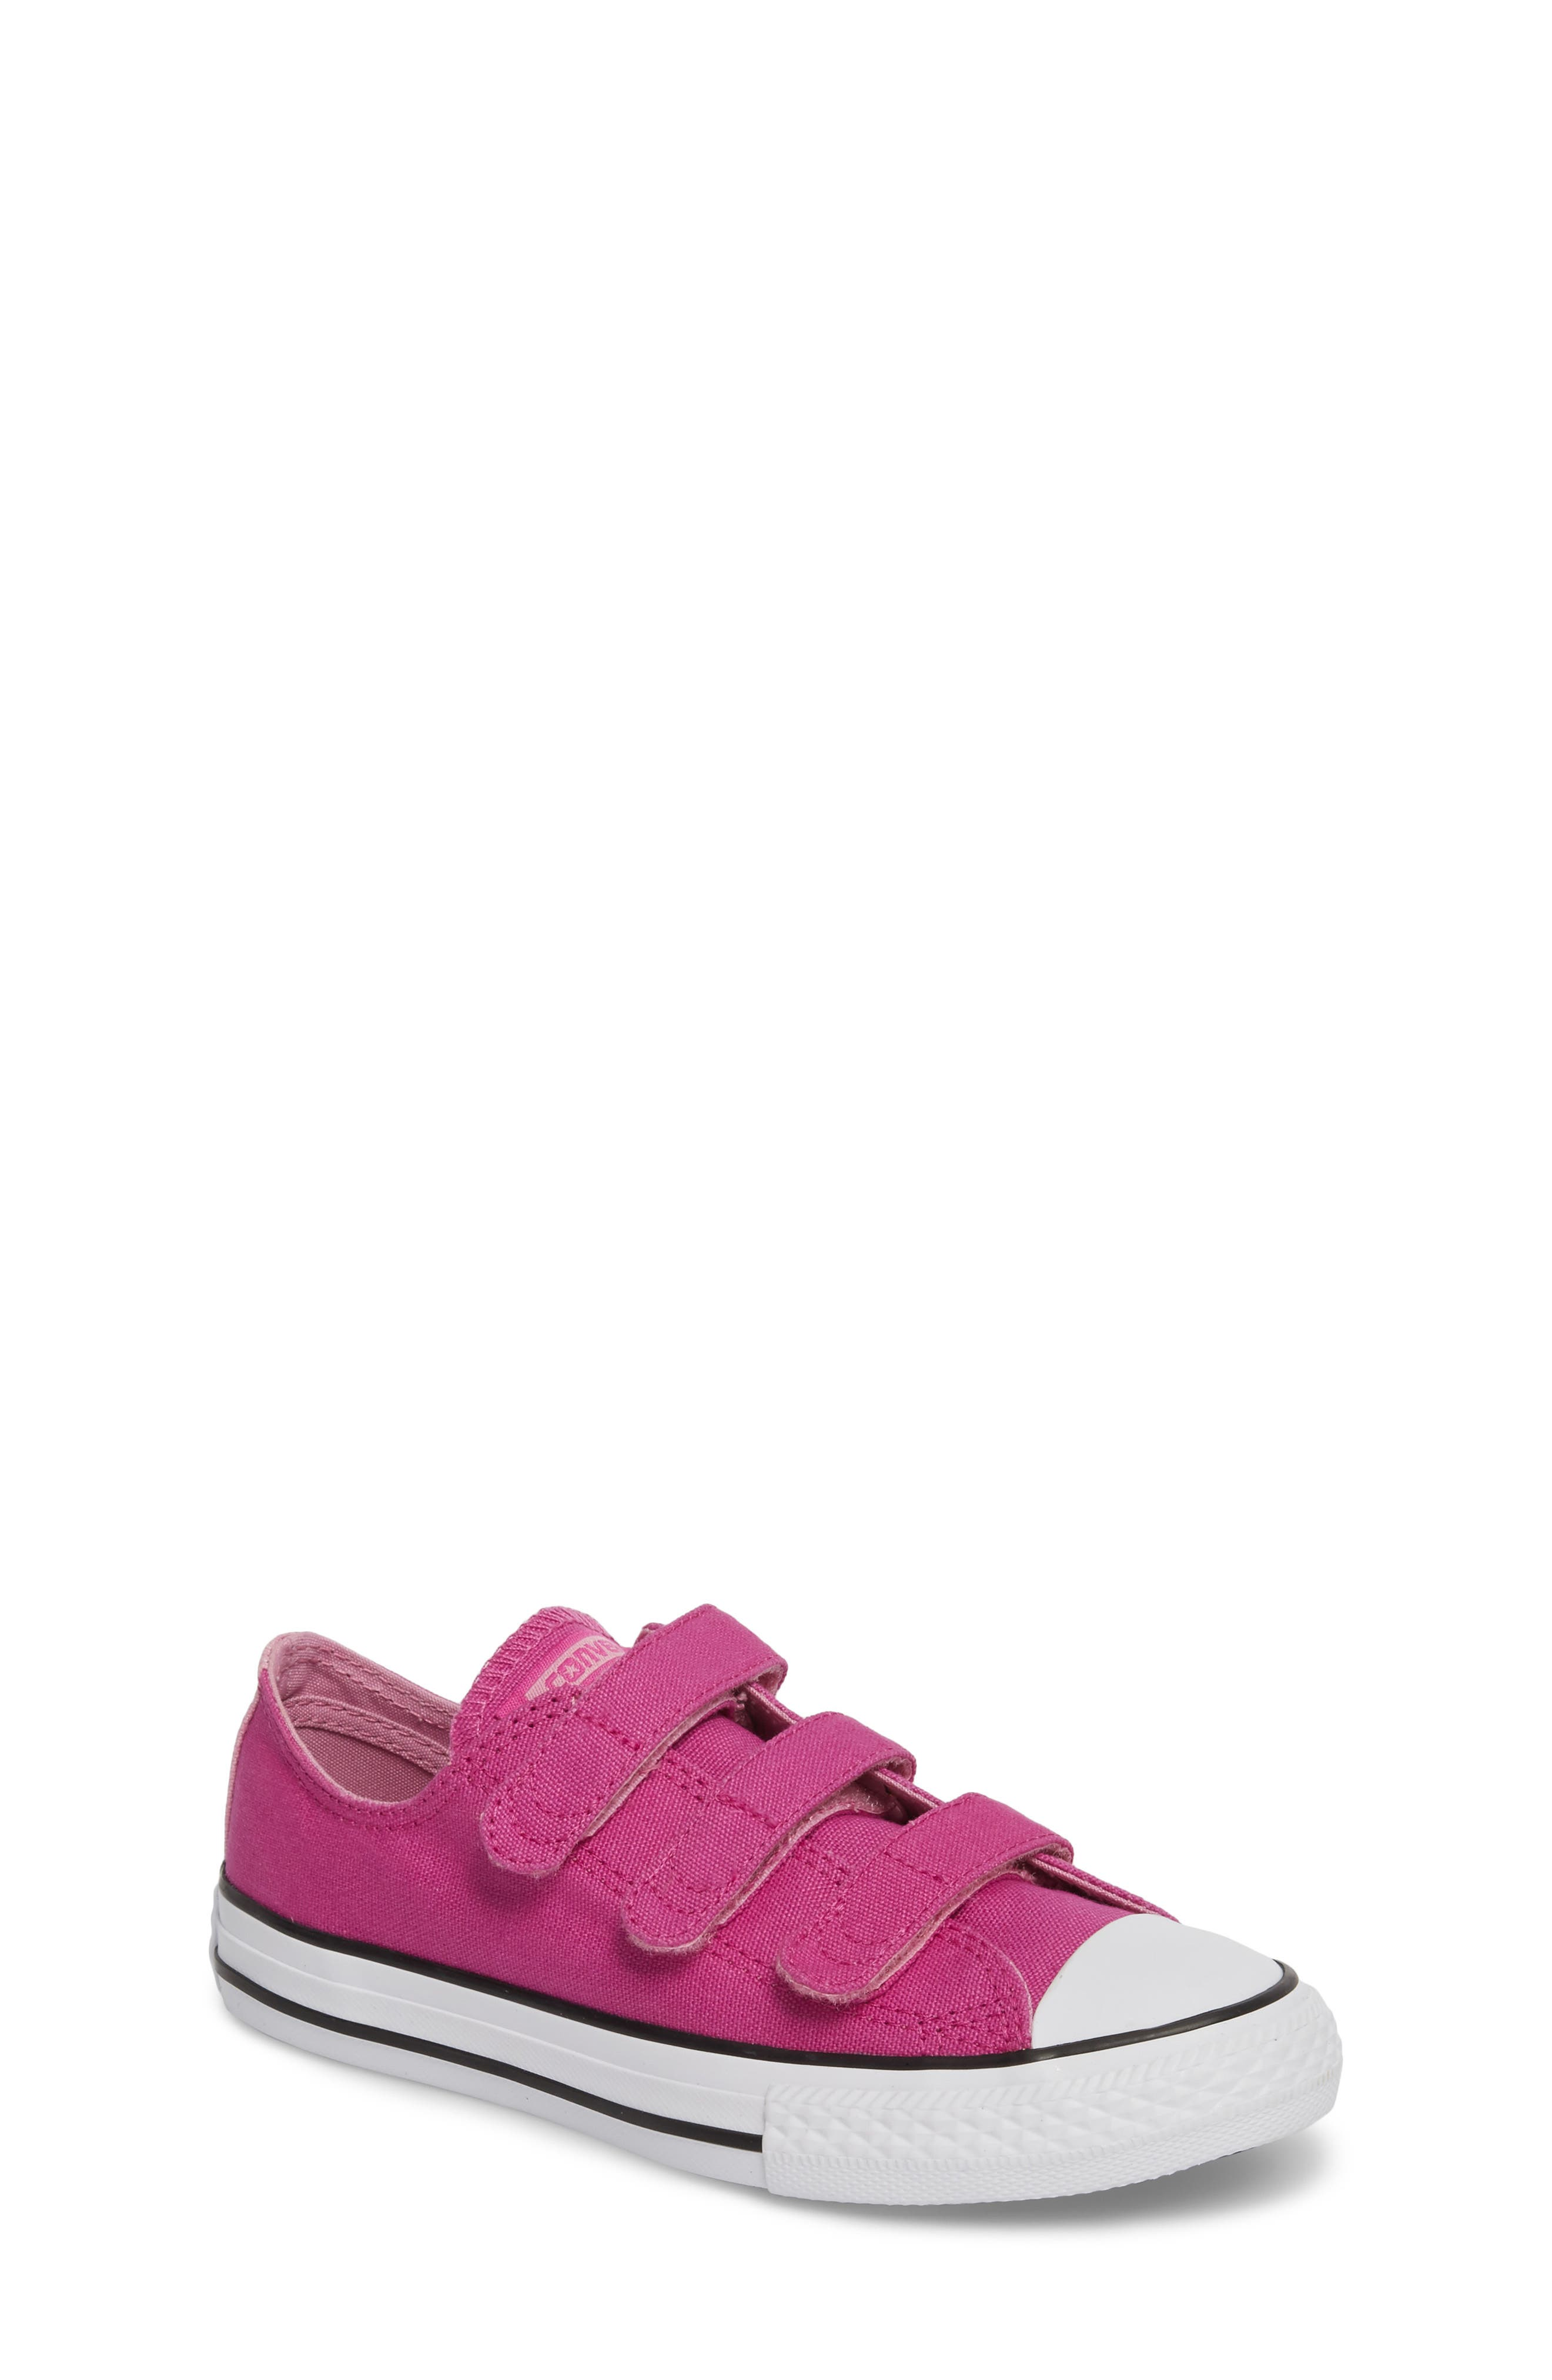 Chuck Taylor<sup>®</sup> All Star<sup>®</sup> 3V Low Top Sneaker,                             Main thumbnail 1, color,                             Hyper Magenta